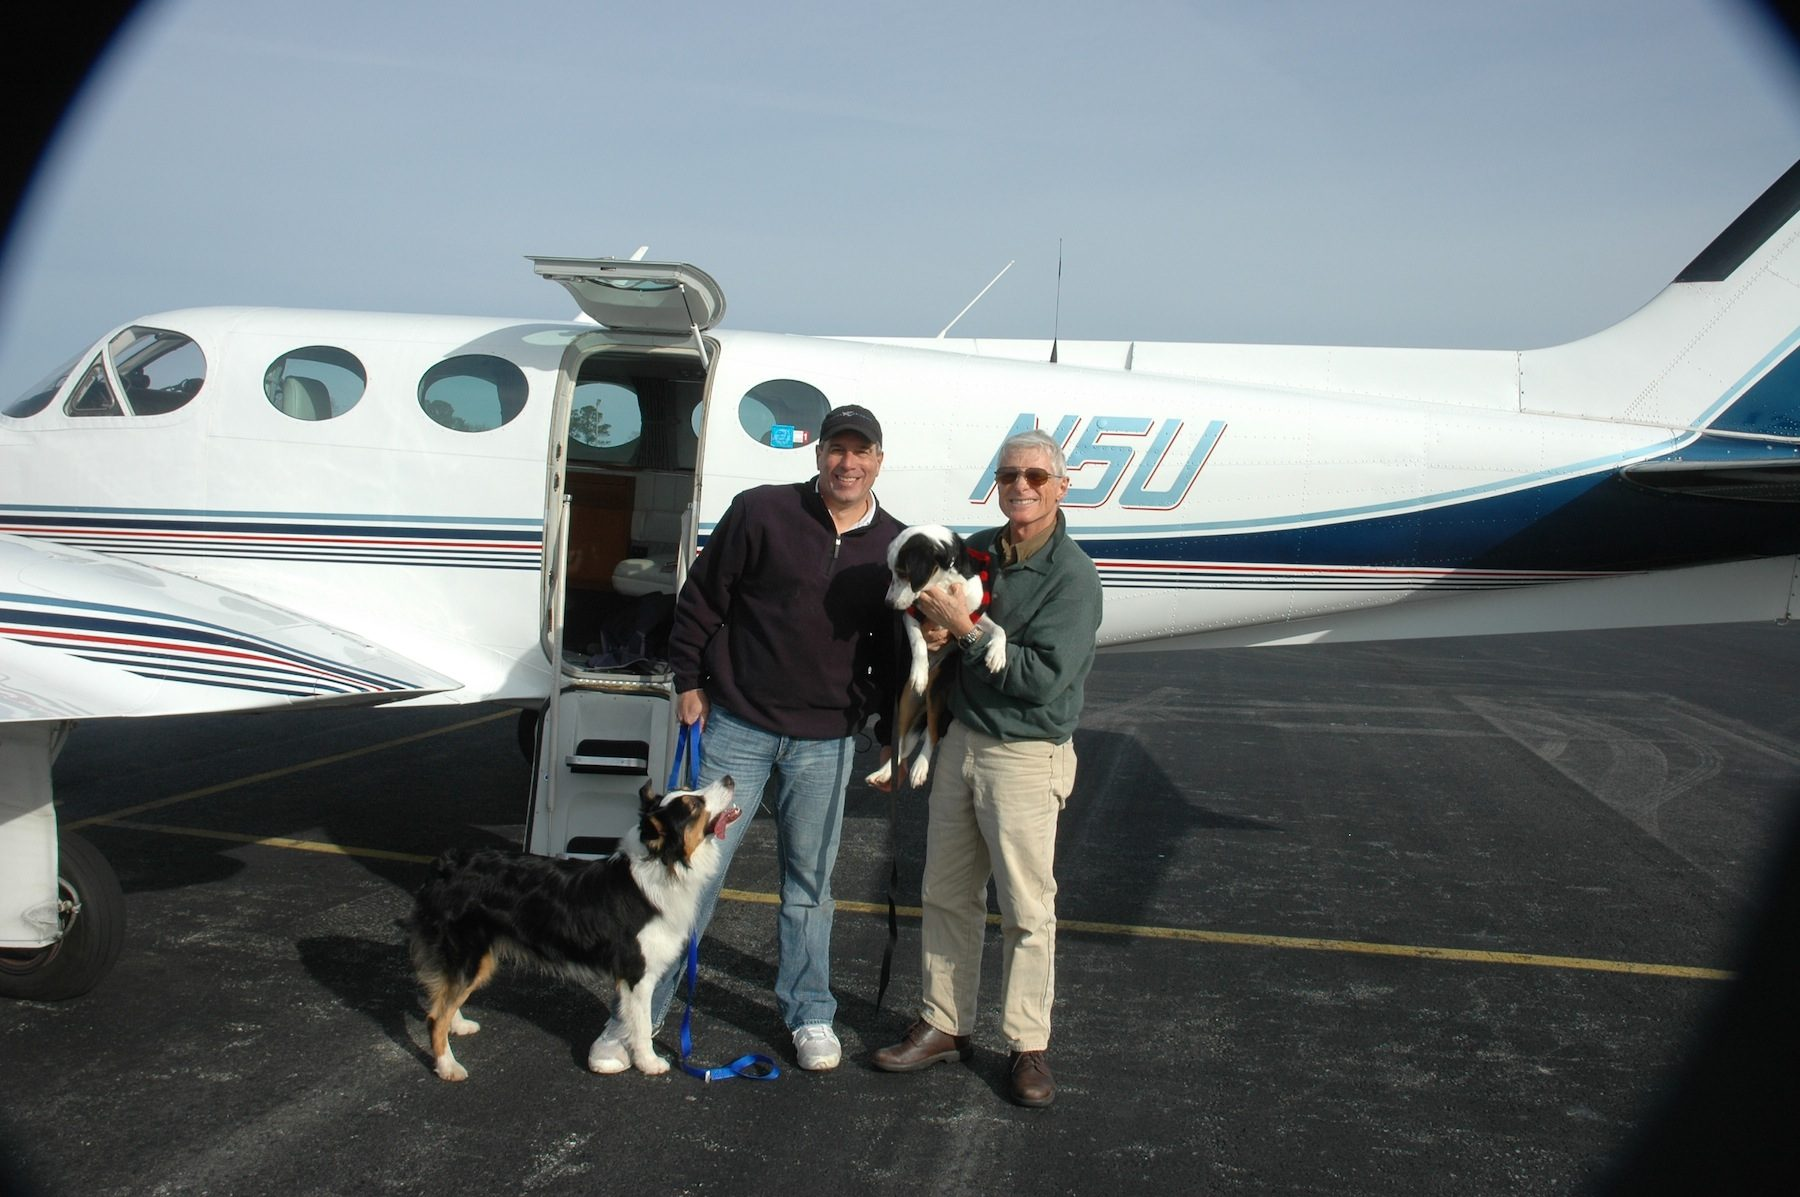 Pilot Dan Krueger transferring Dasher to Pilot Steve Shoop